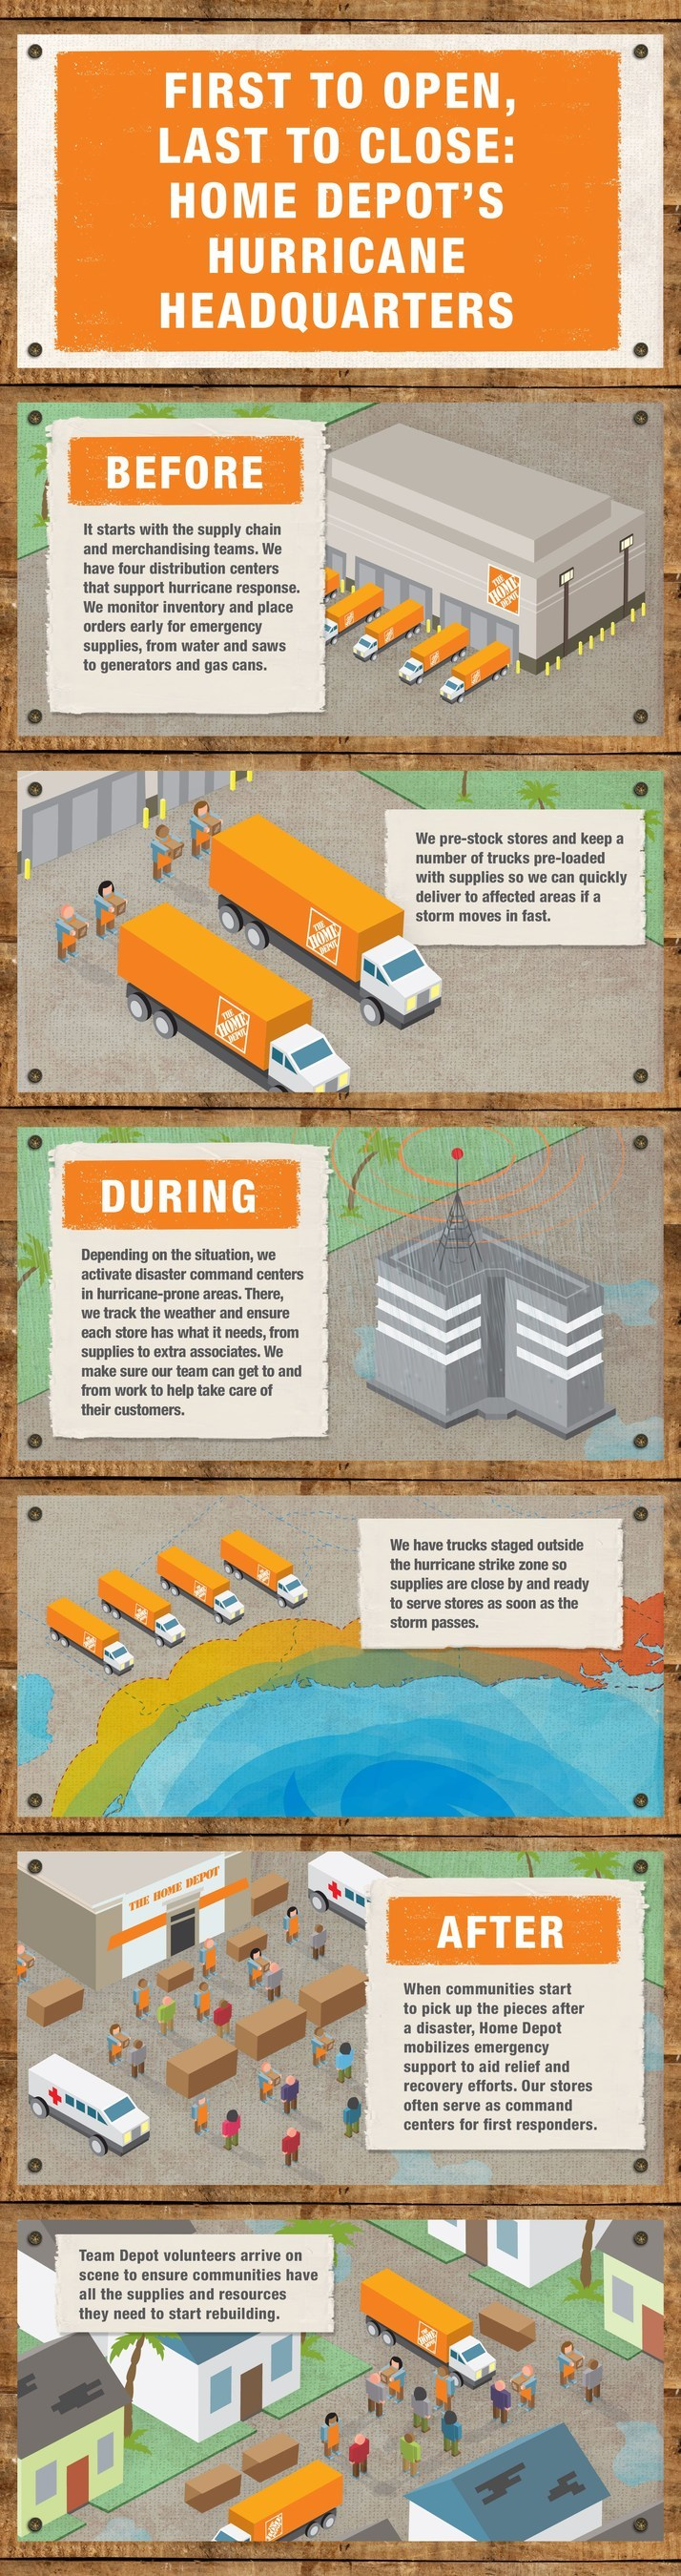 From Hurricane Preparedness Workshops to managing availability of emergency supplies, Home Depot works around the clock before, during and after a storm to keep our customers and associates safe. Infograph created by The Home Depot Story Lab